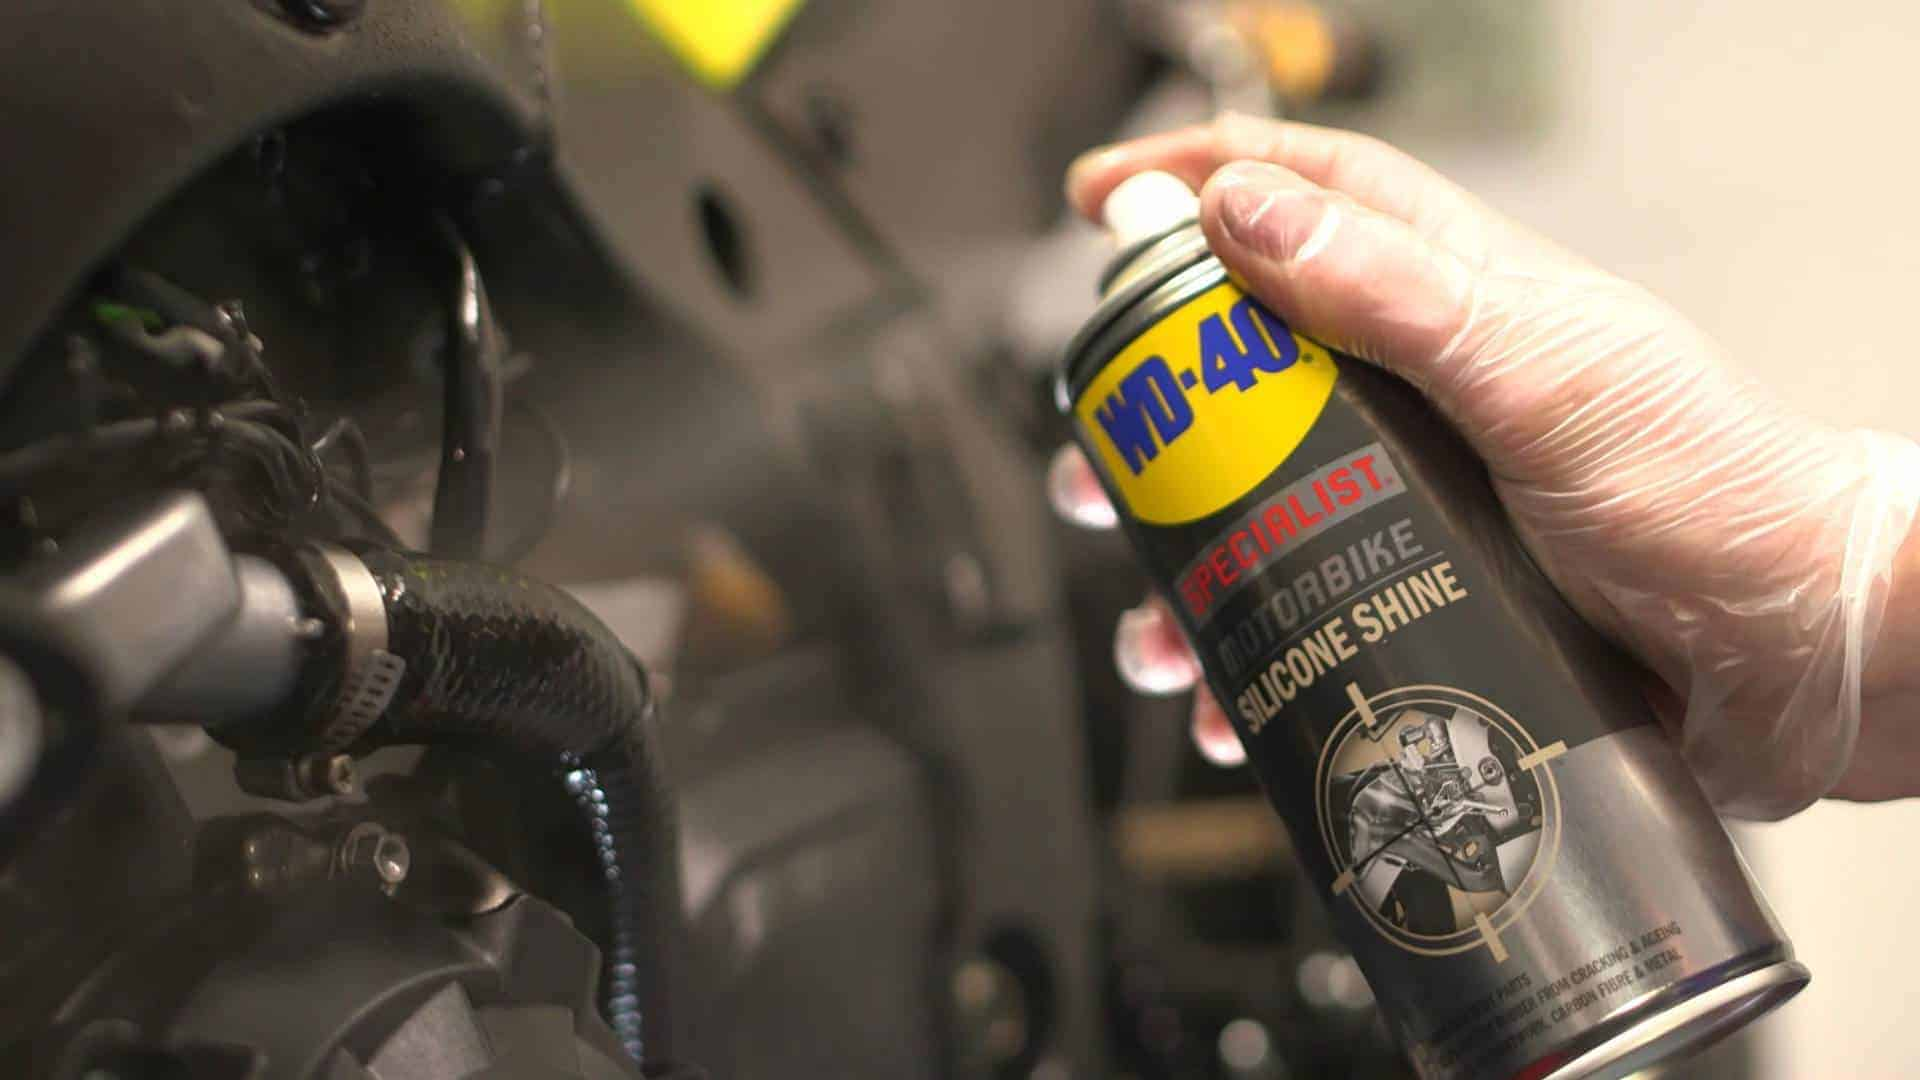 WD-40-SPECIALIST-Moto-Lustreur-Silicone-usage-protection-caoutchouc